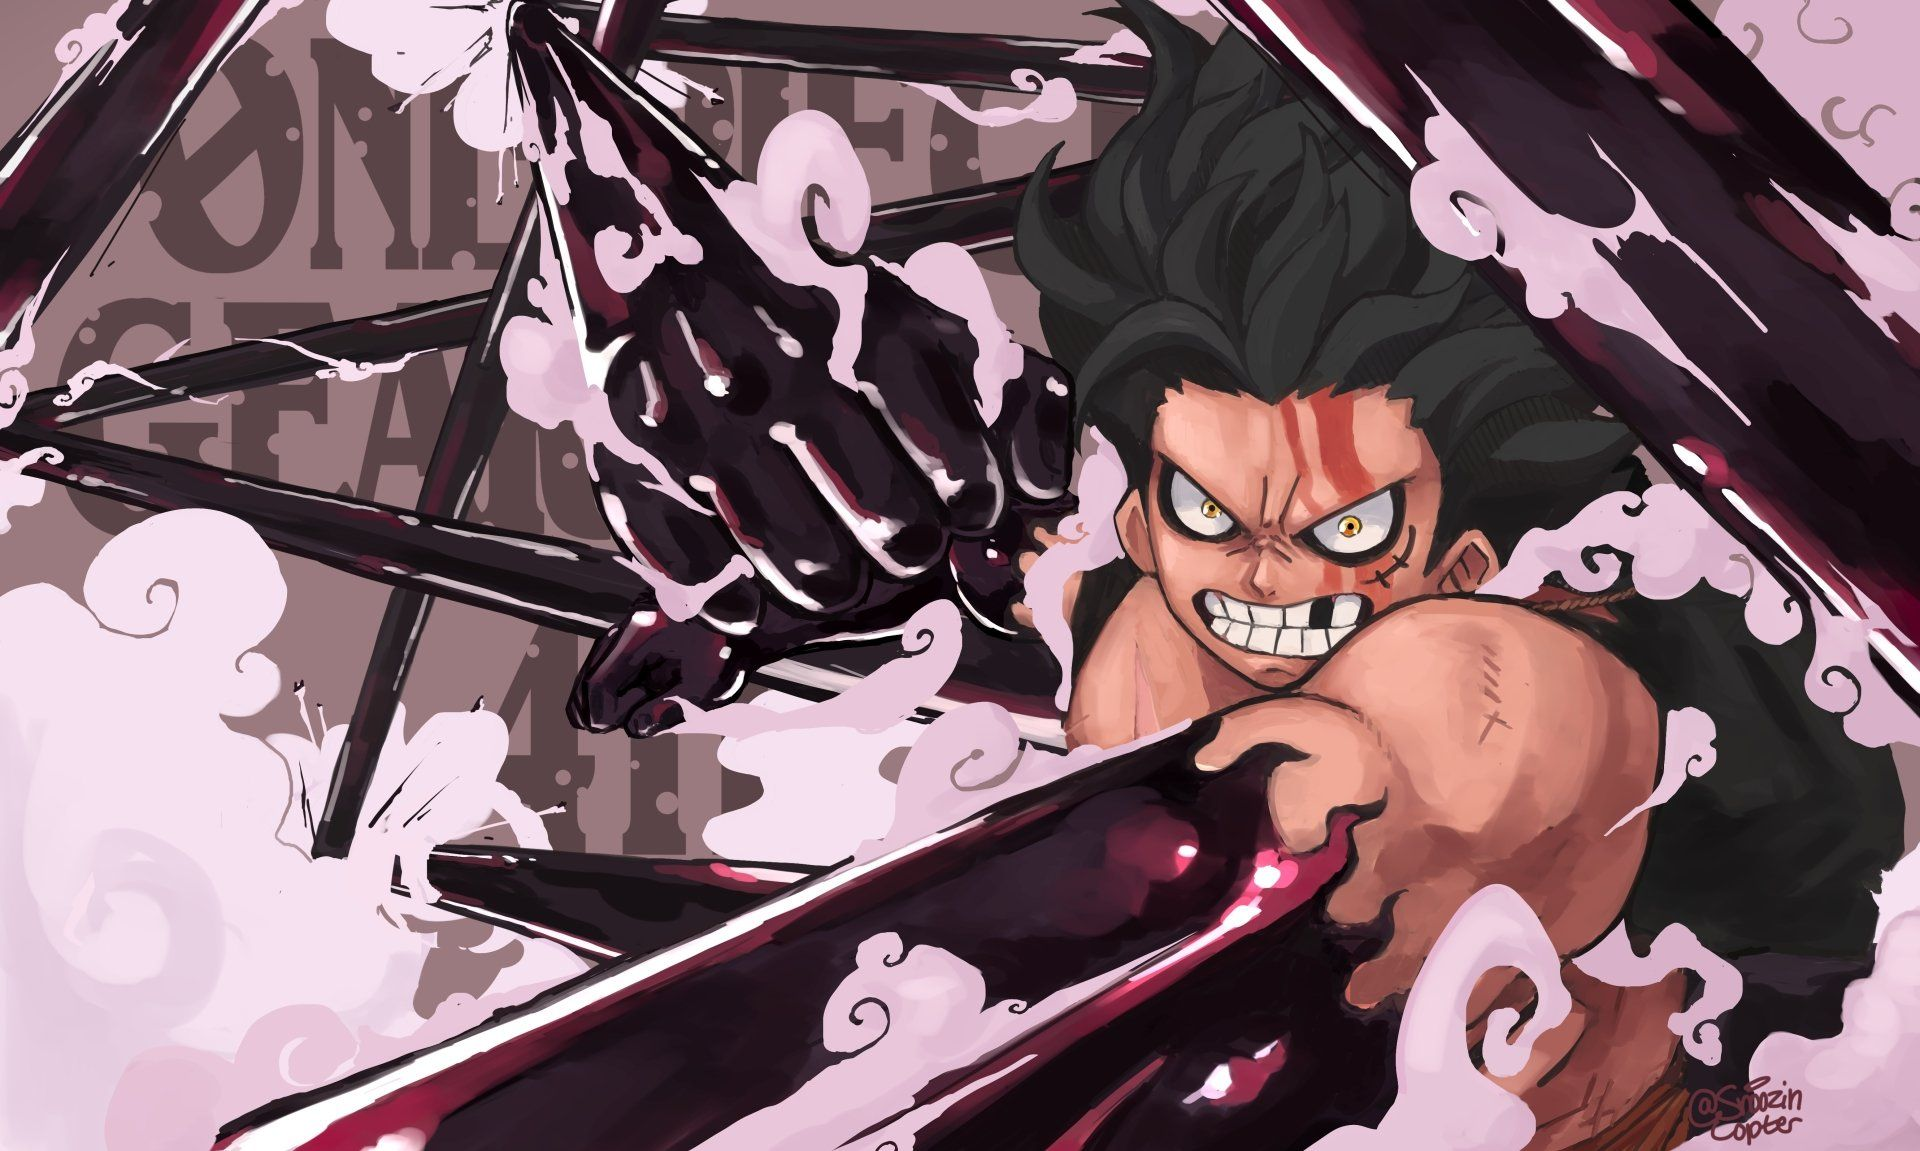 Luffy will defeat kaido in one piece with his new gomu gomu no mi power, luffy's gear 5. One Piece Luffy Gear 4 Wallpapers Top Free One Piece Luffy Gear 4 Backgrounds Wallpaperaccess